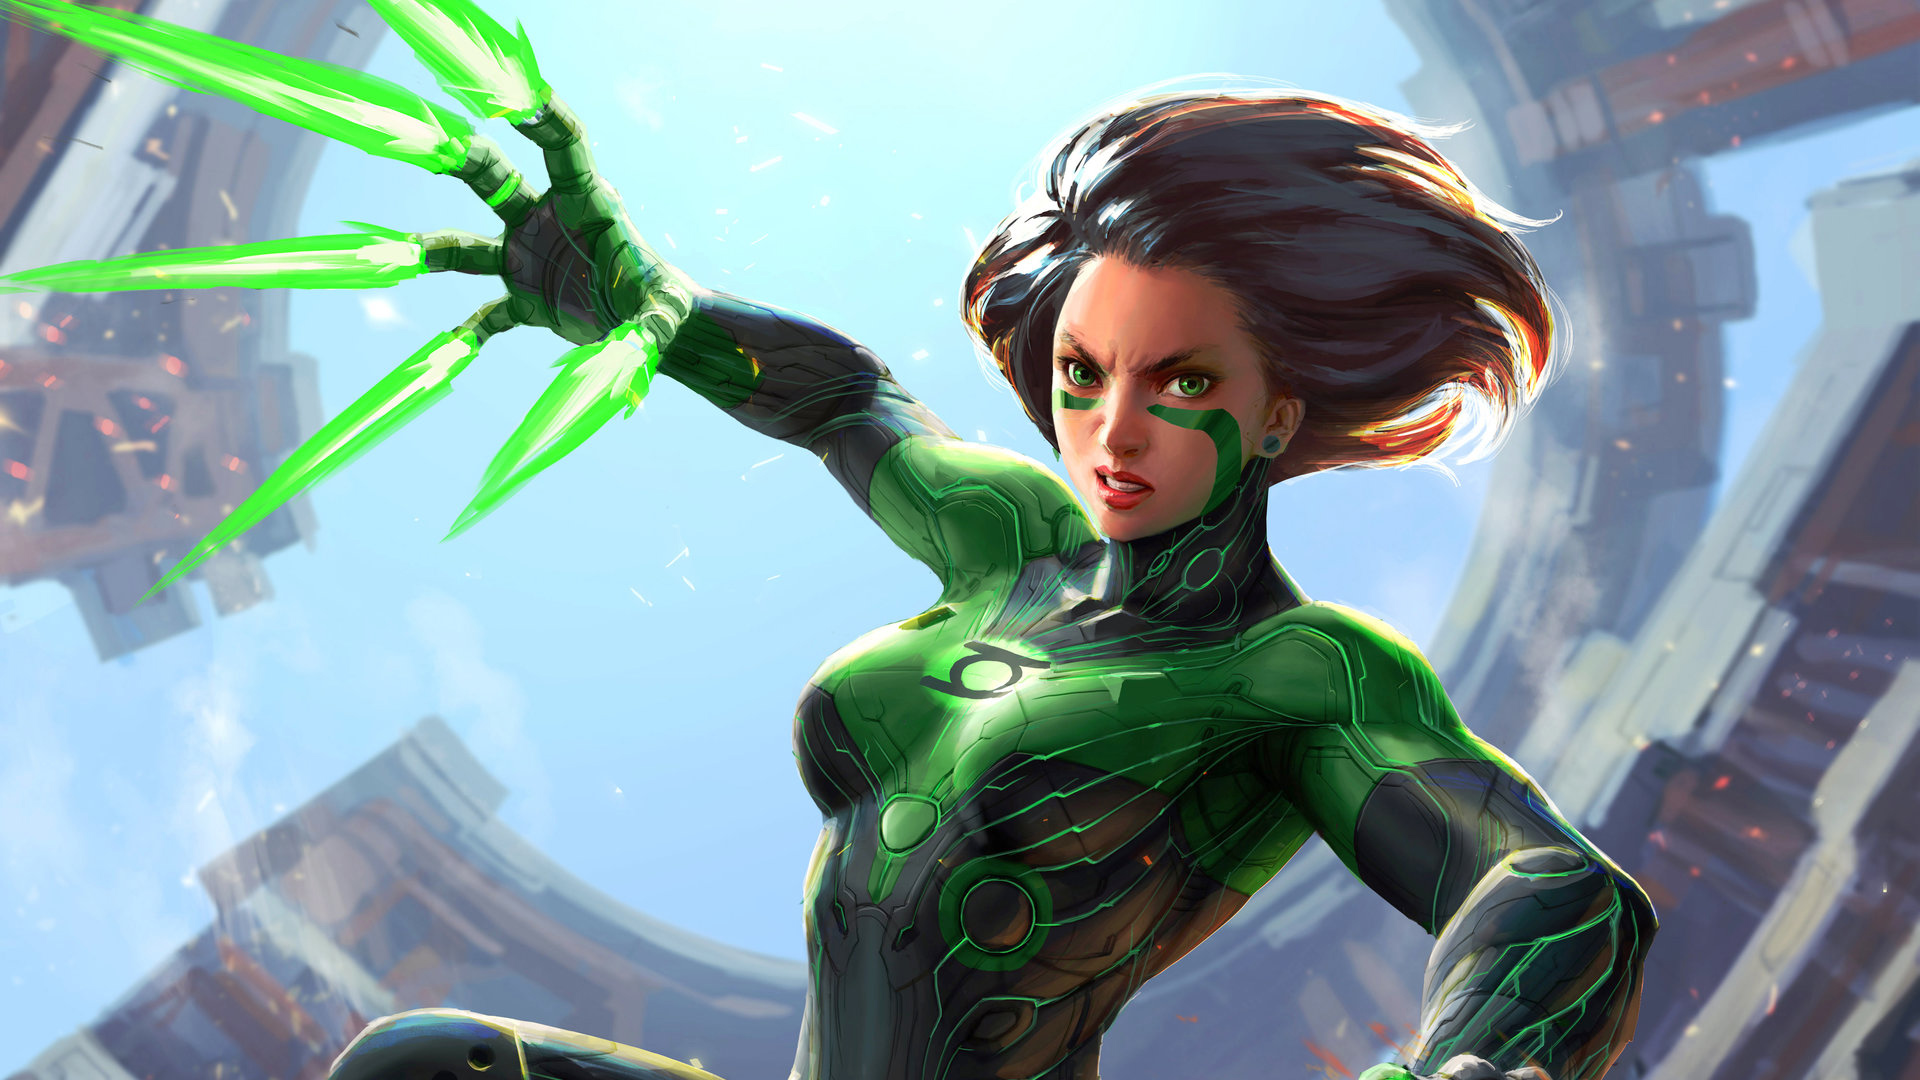 Green Alita Battle Angel, HD Movies, 4k Wallpapers, Images ...